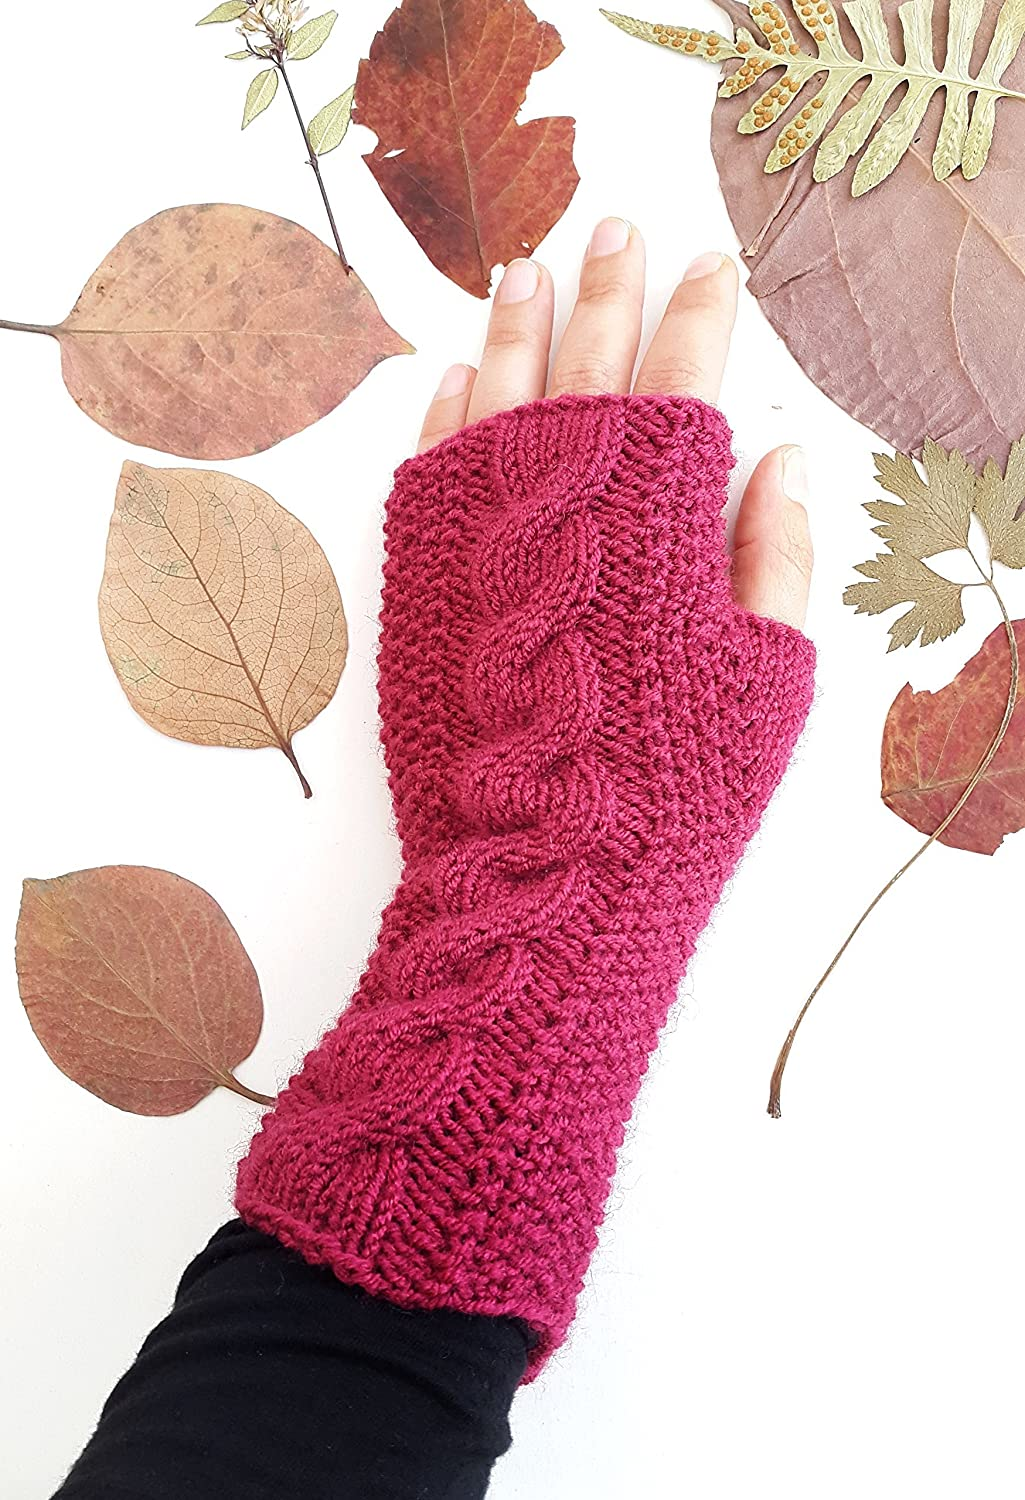 Magenta cable knit gloves - Fingerless gloves Fingerless mittens Womens gloves Knit wrist warmer Gift for girlfriend